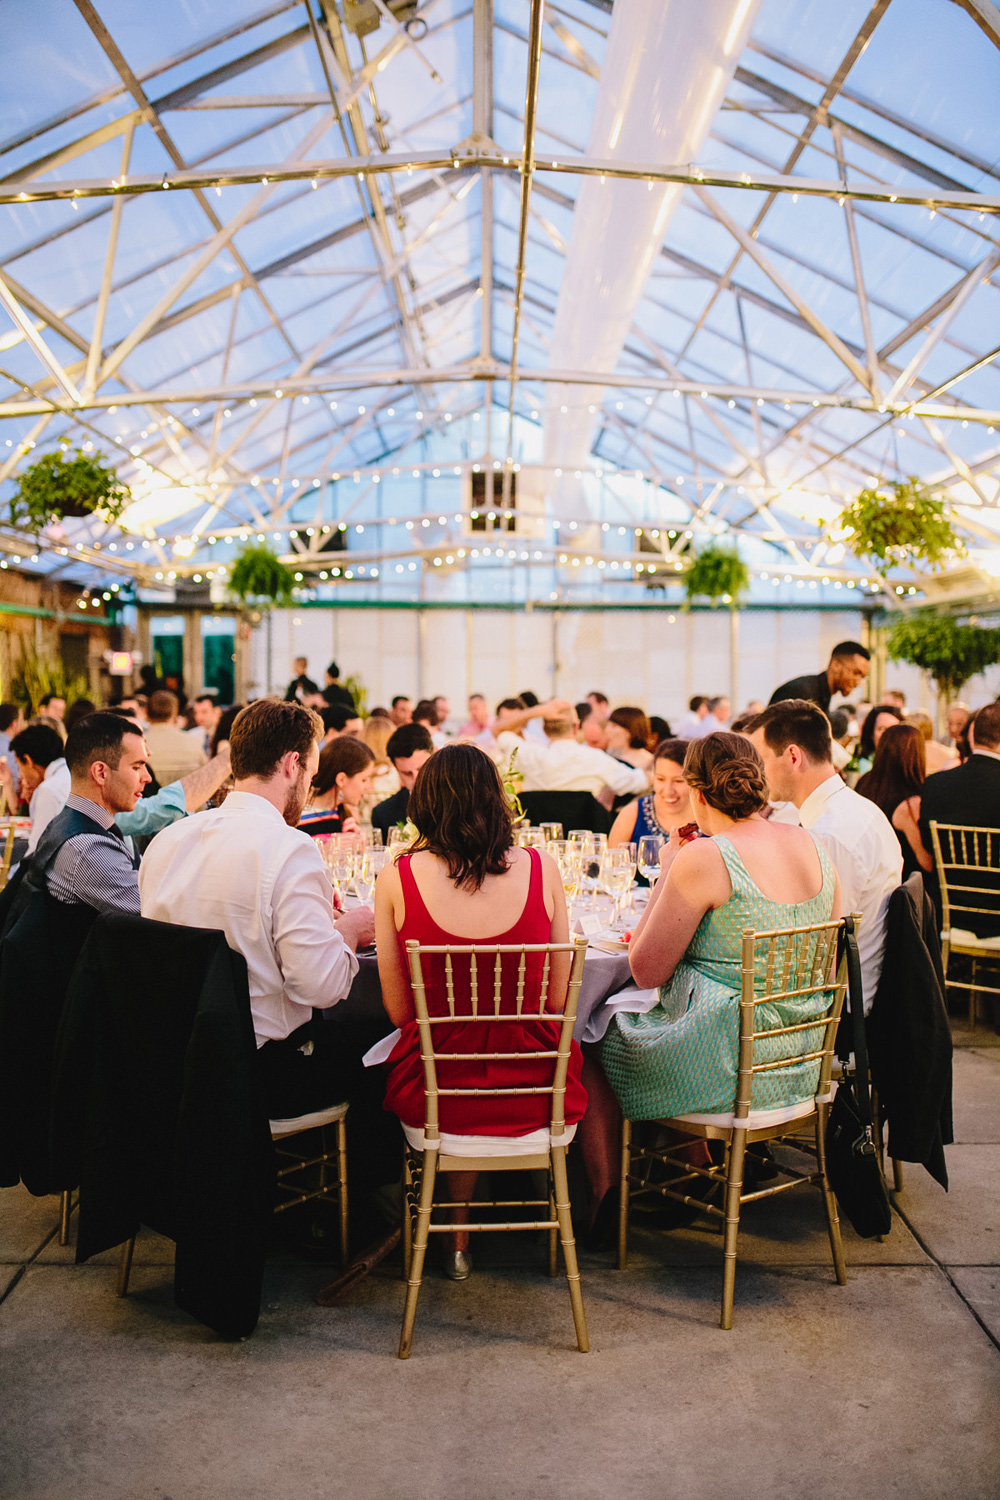 219-horticulture-center-wedding-reception.jpg